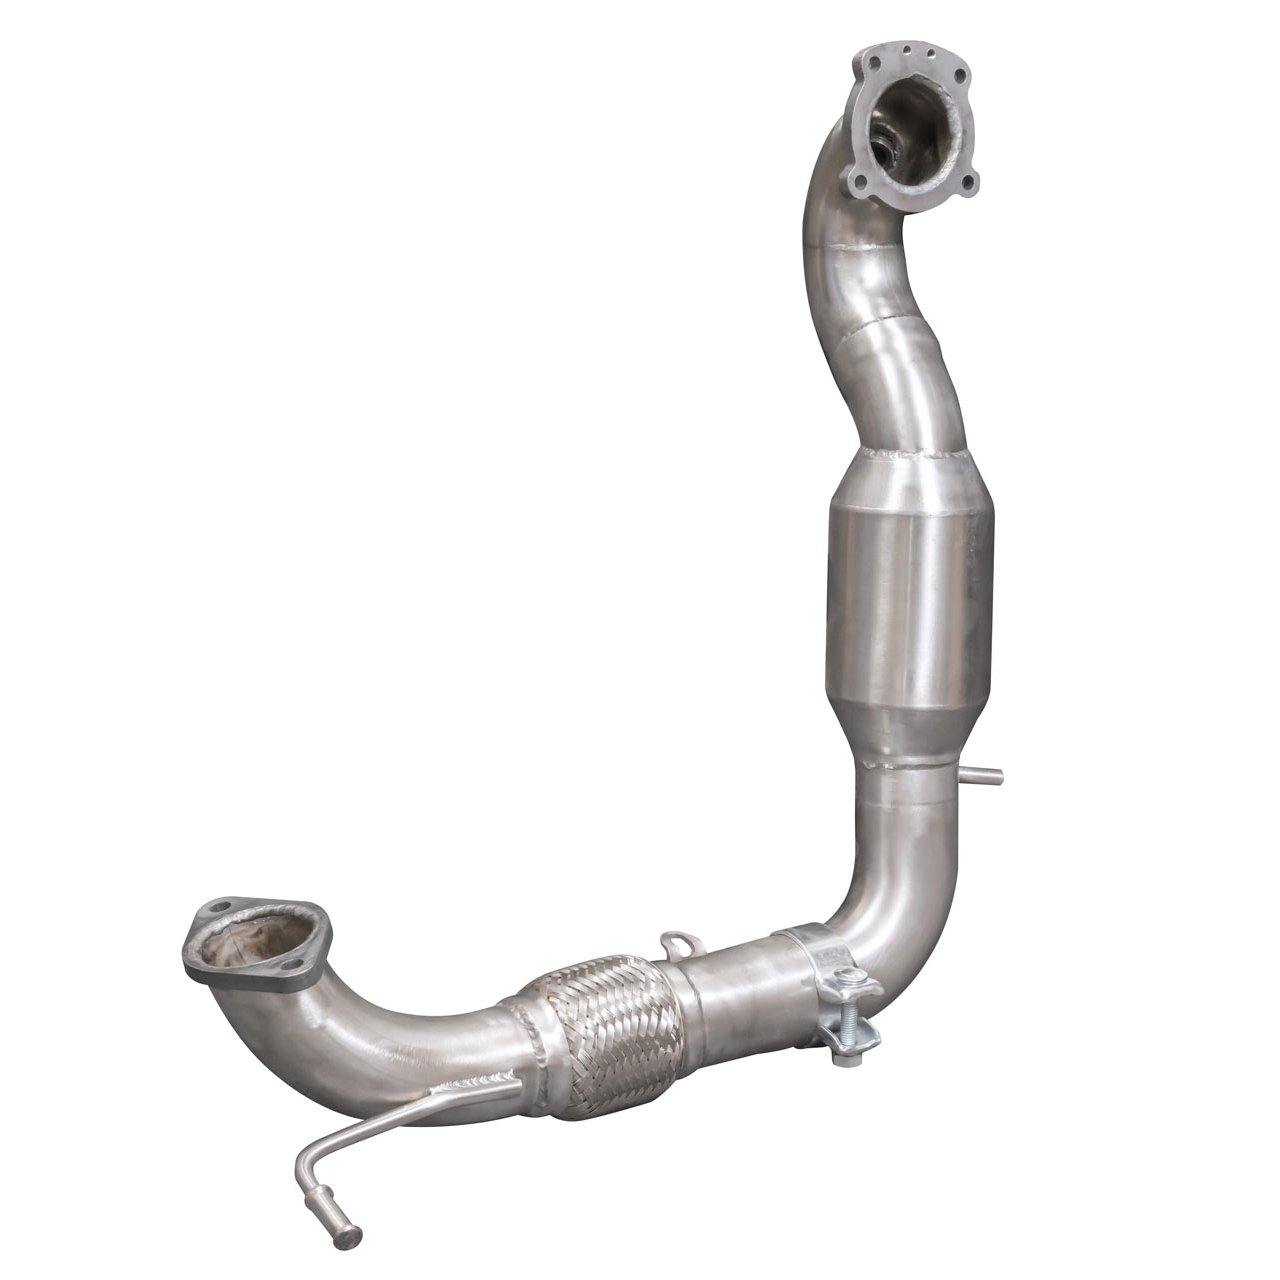 Ford Fiesta (MK7) EcoBoost 1.0 T Front Pipe Sports Cat / De-Cat Performance Exhaust